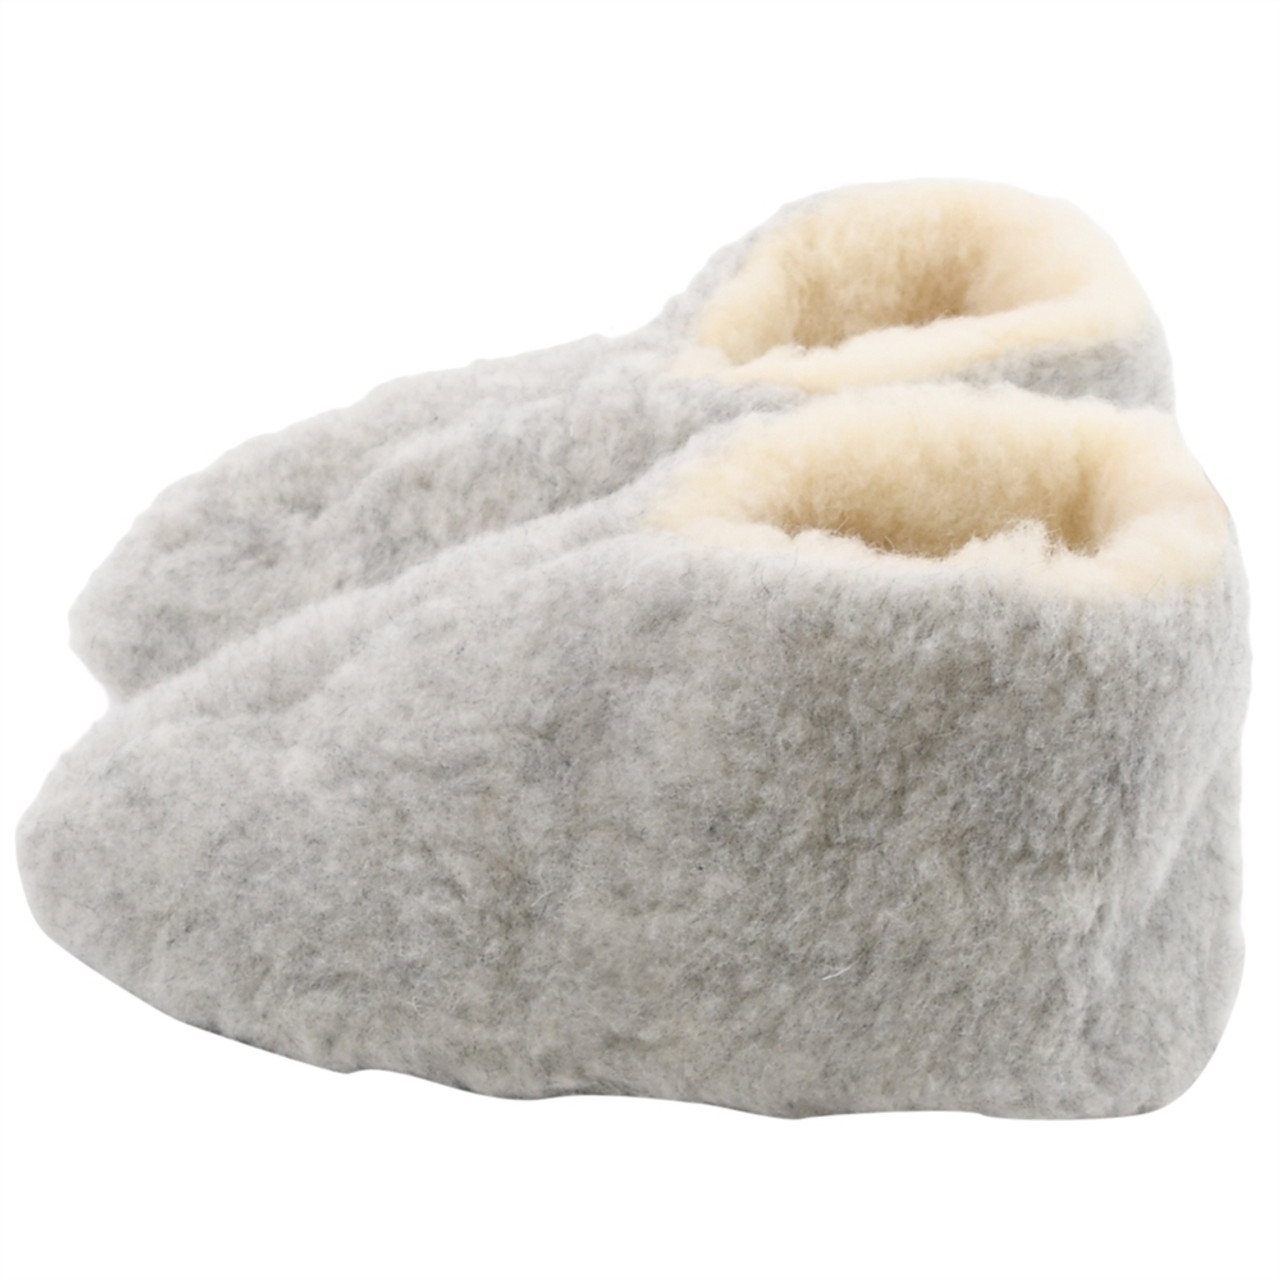 Sheep's Wool Slippers - Fits Sizes w8-9